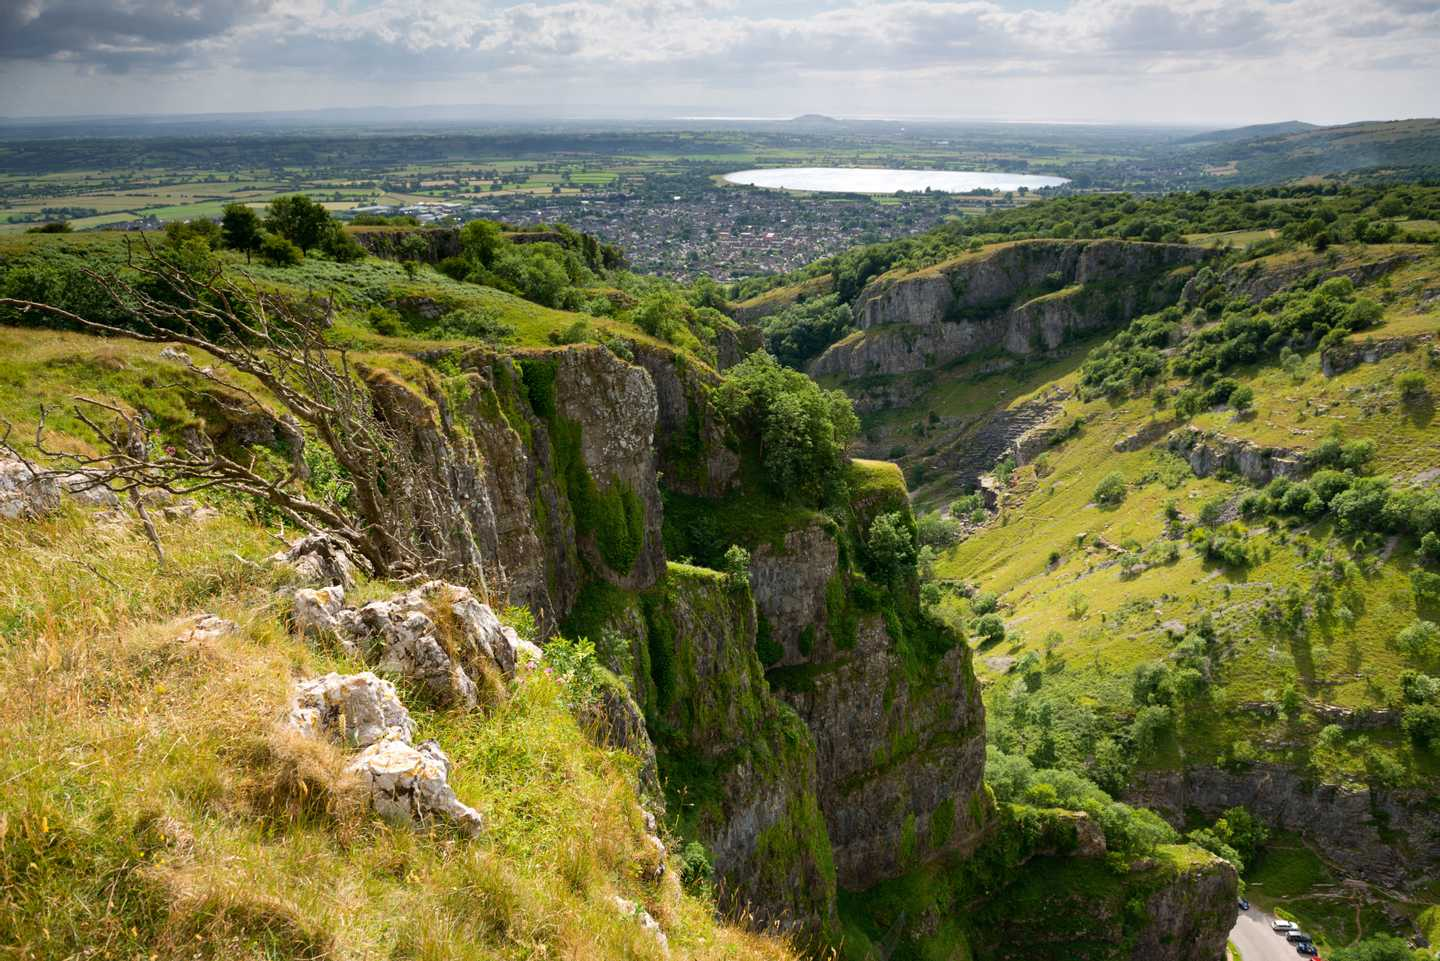 High angle shot of Cheddar Gorge